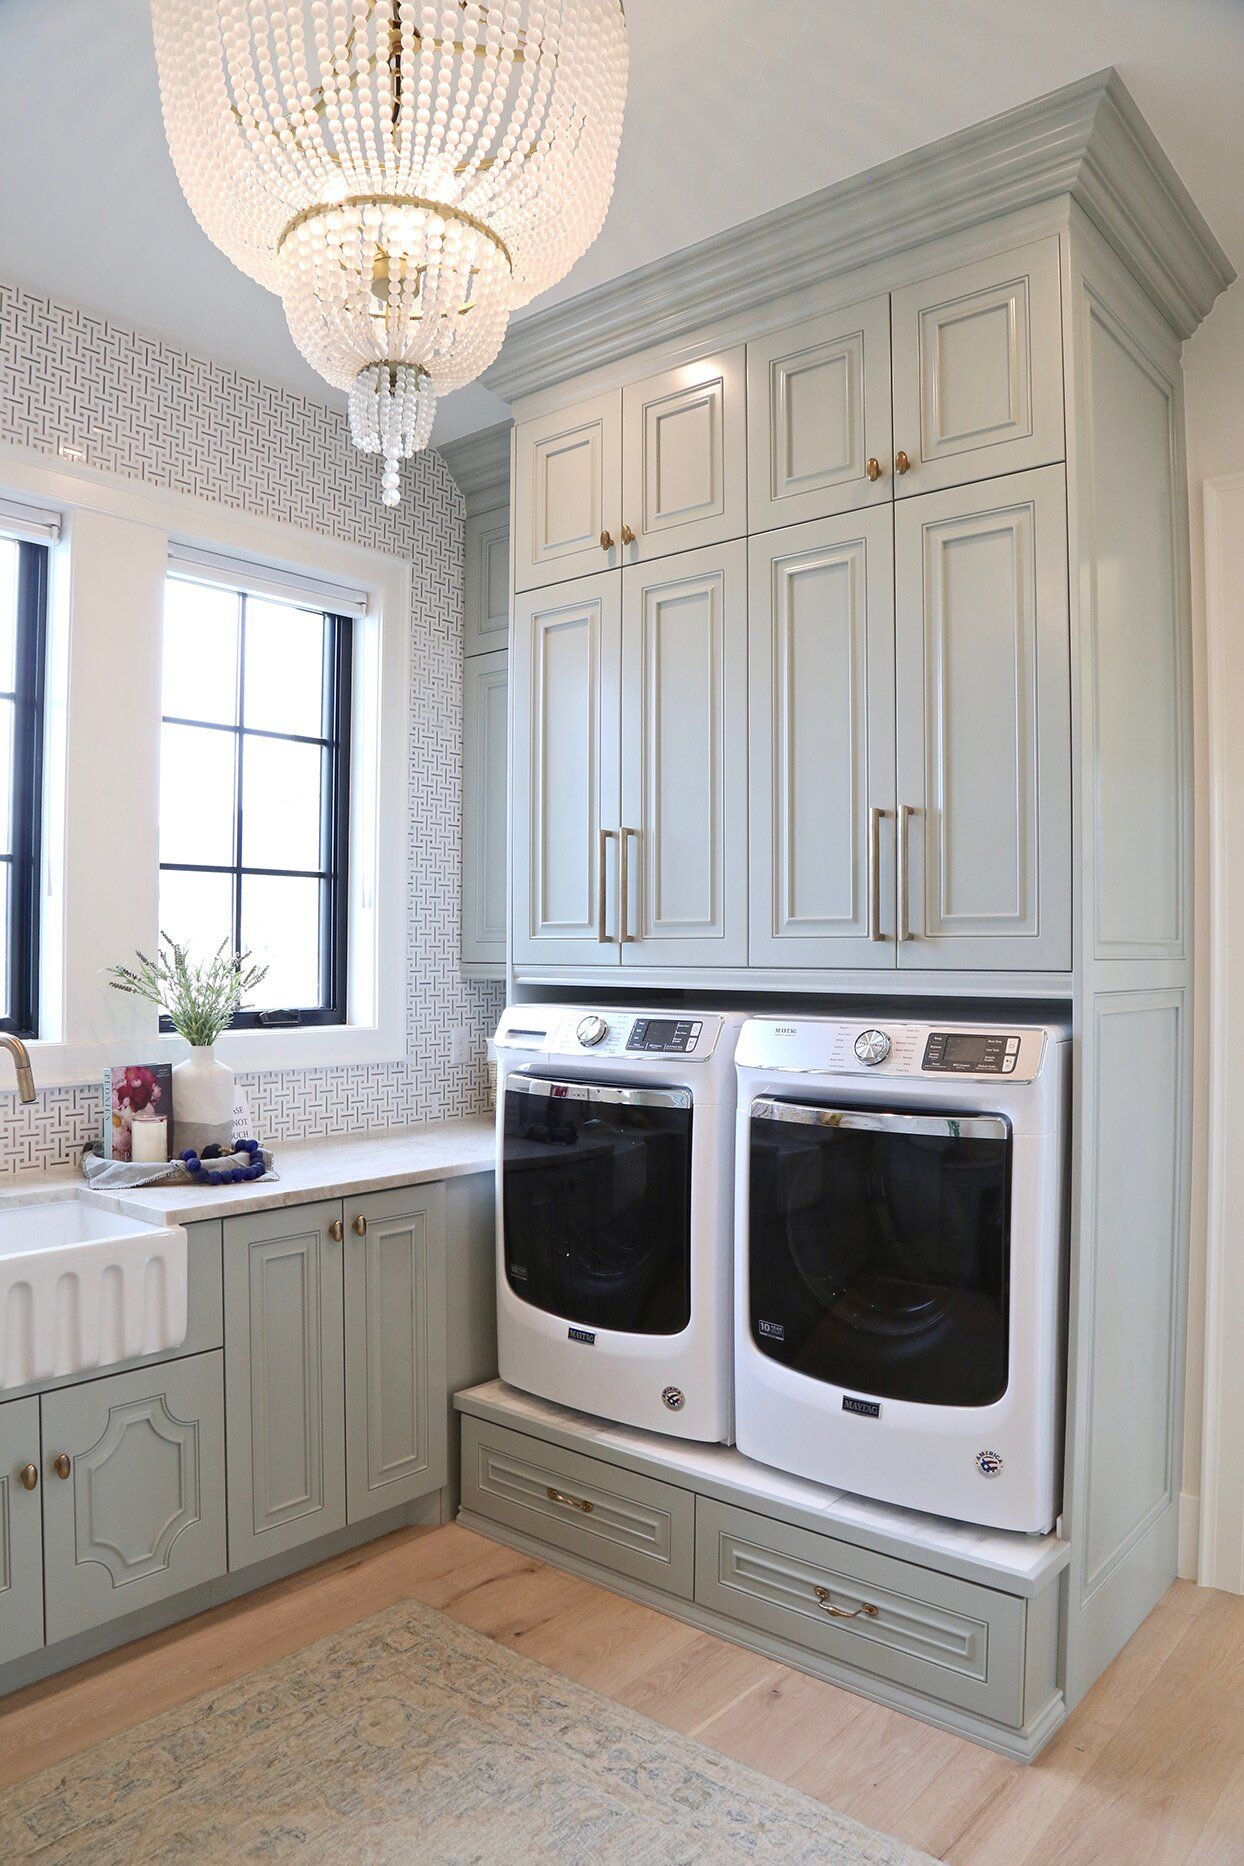 Goodbye Gray Hello Earth Tones Our 2020 Paint Color Forecast In 2020 With Images Large Laundry Rooms Dream Laundry Room Laundry Room Design